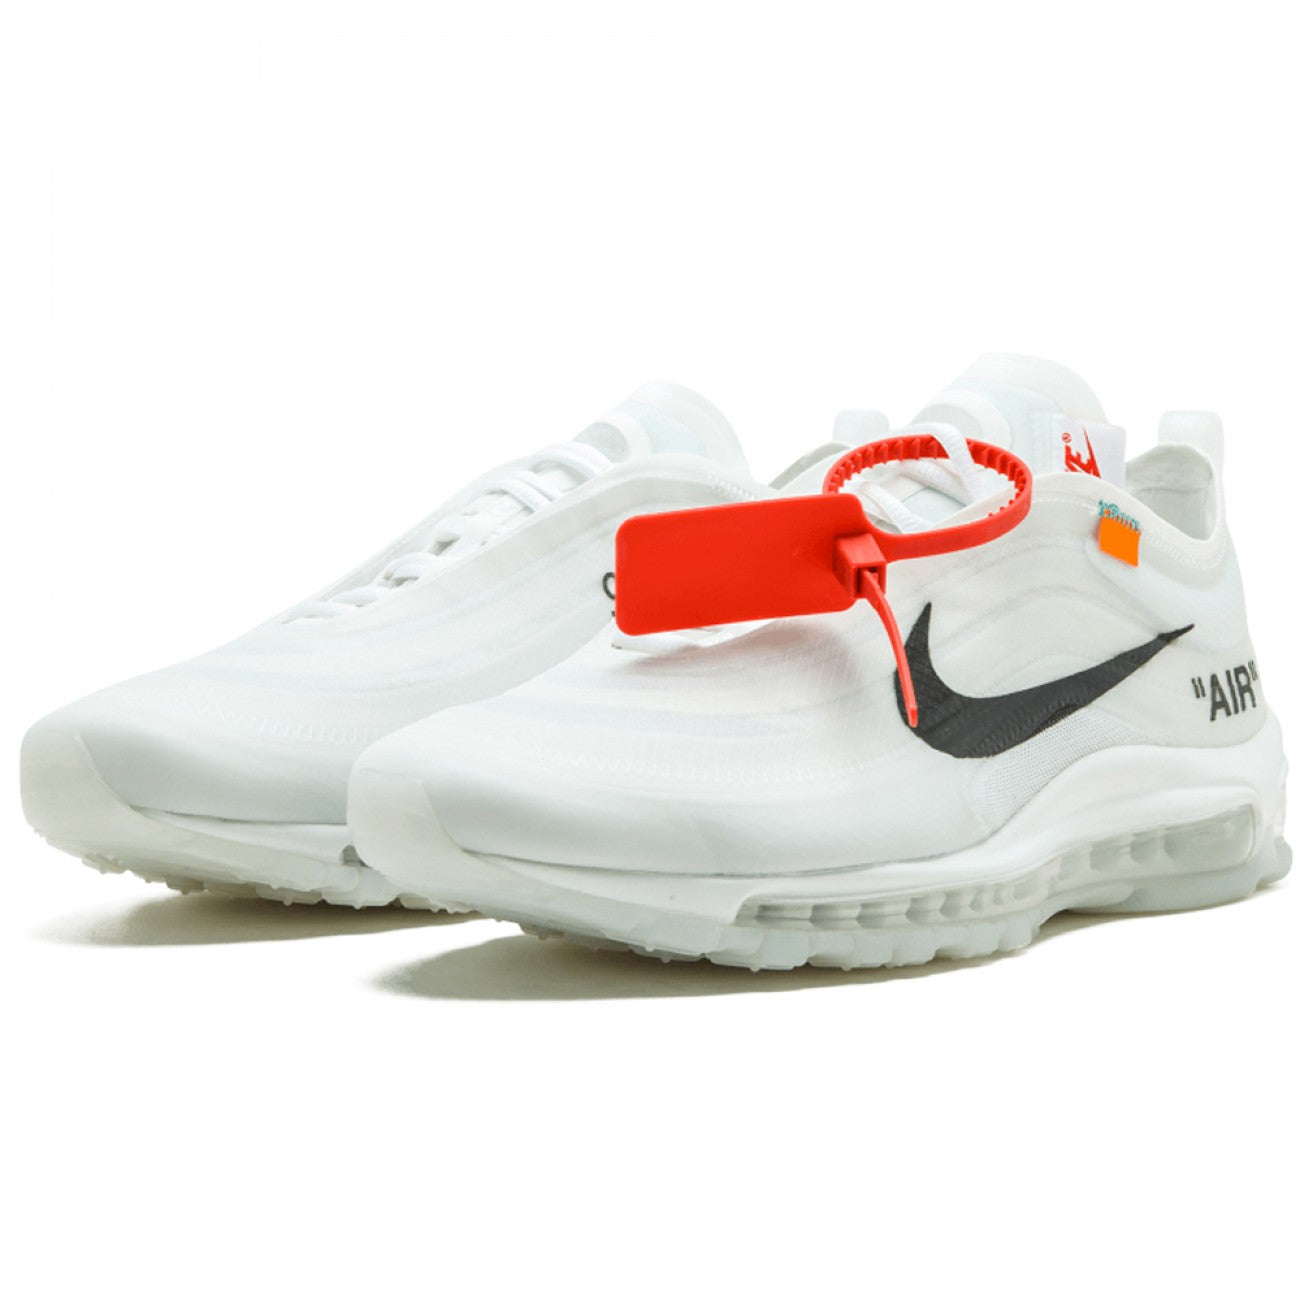 Air Max 97 Off-White – FIT in Sneakers